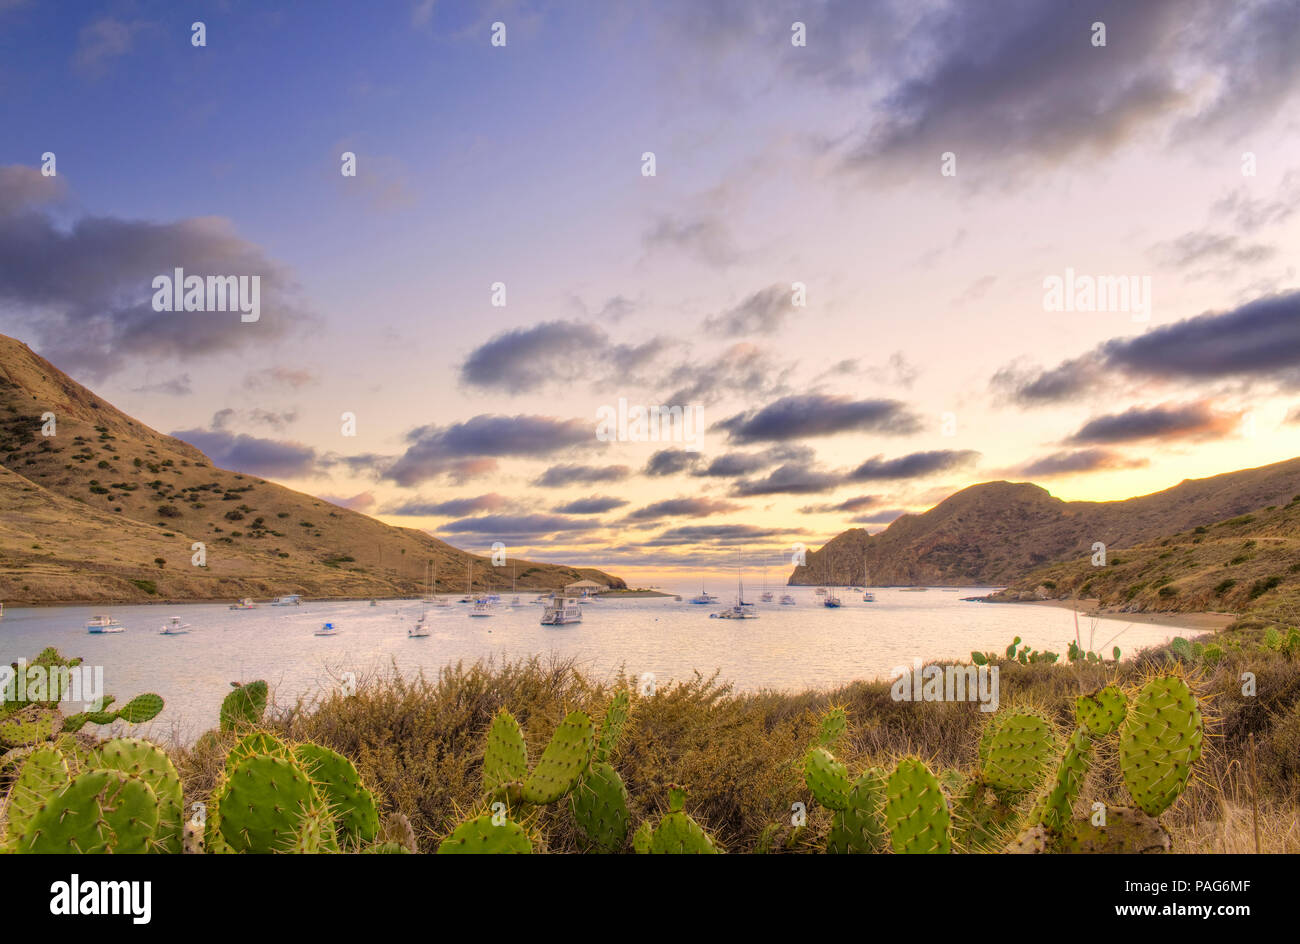 A field of cactus with Catalina Harbor on Catalina Island in the background. - Stock Image